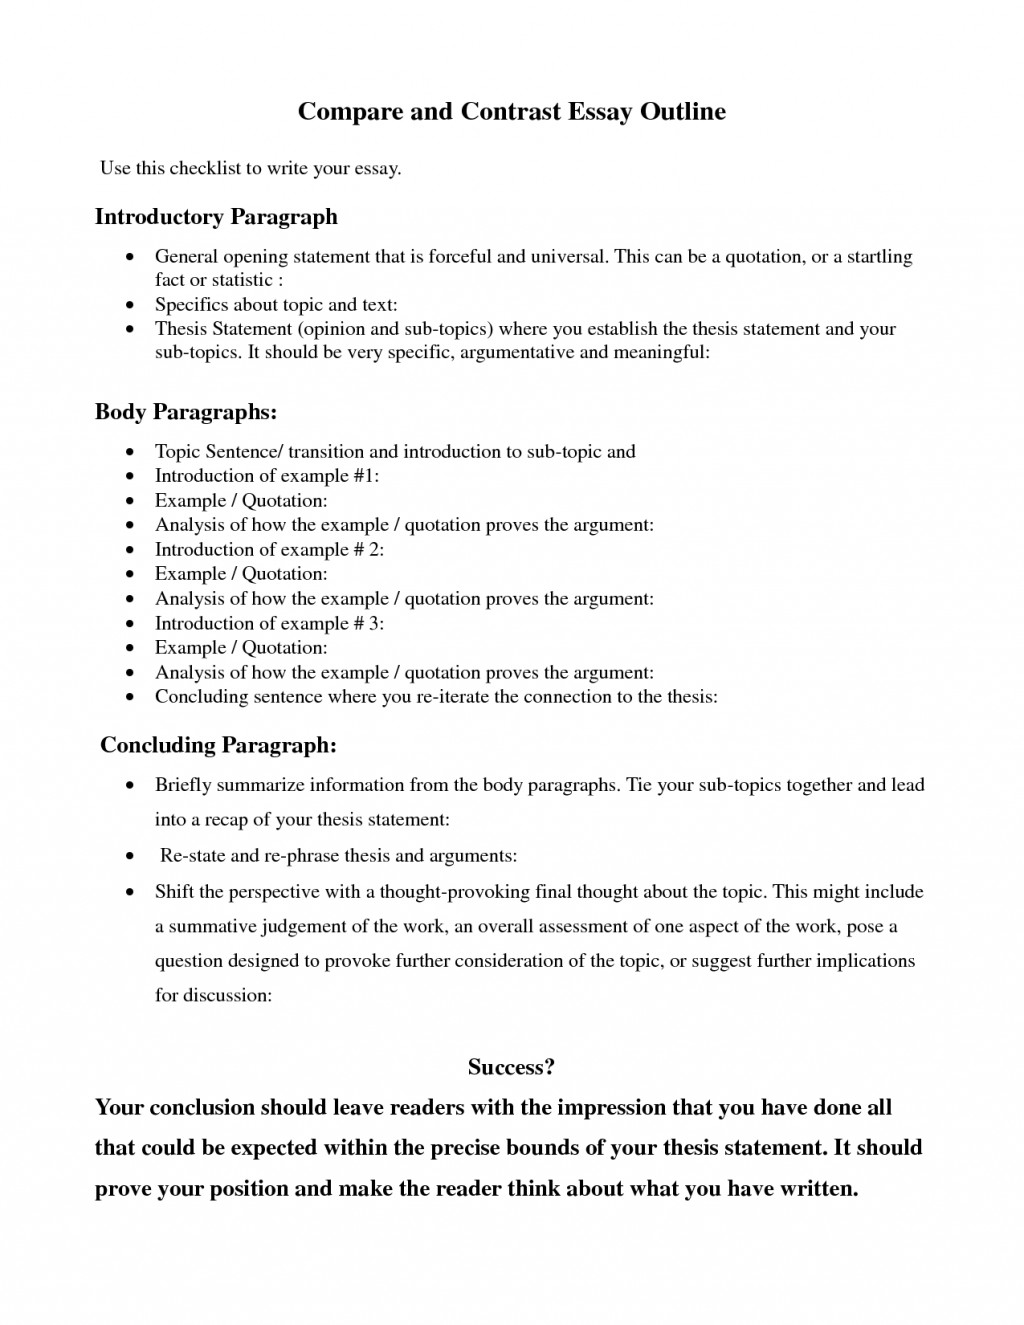 009 Essay Example Free Compare And Contrast Examples Singular Comparison Pdf Large